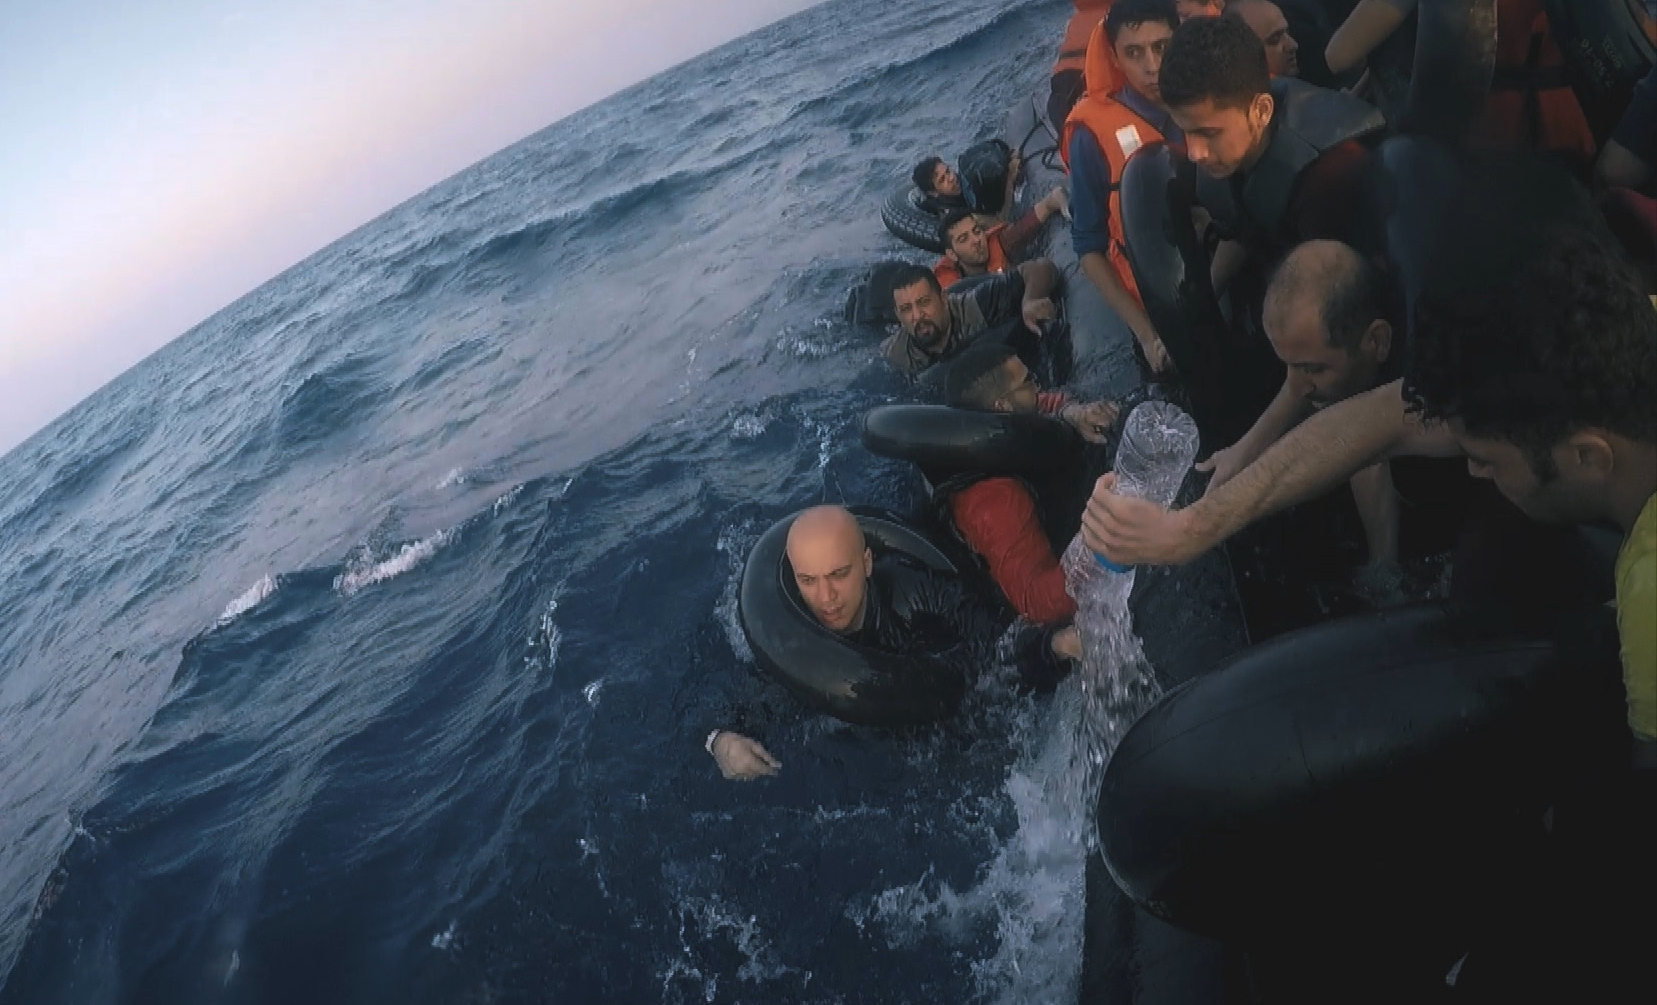 Hassan Akkad, one of the filmmakers and subjects of Exodus, on an imperiled raft with other refugees trying to cross the Mediterranean. (Image courtesy FRONTLINE.)